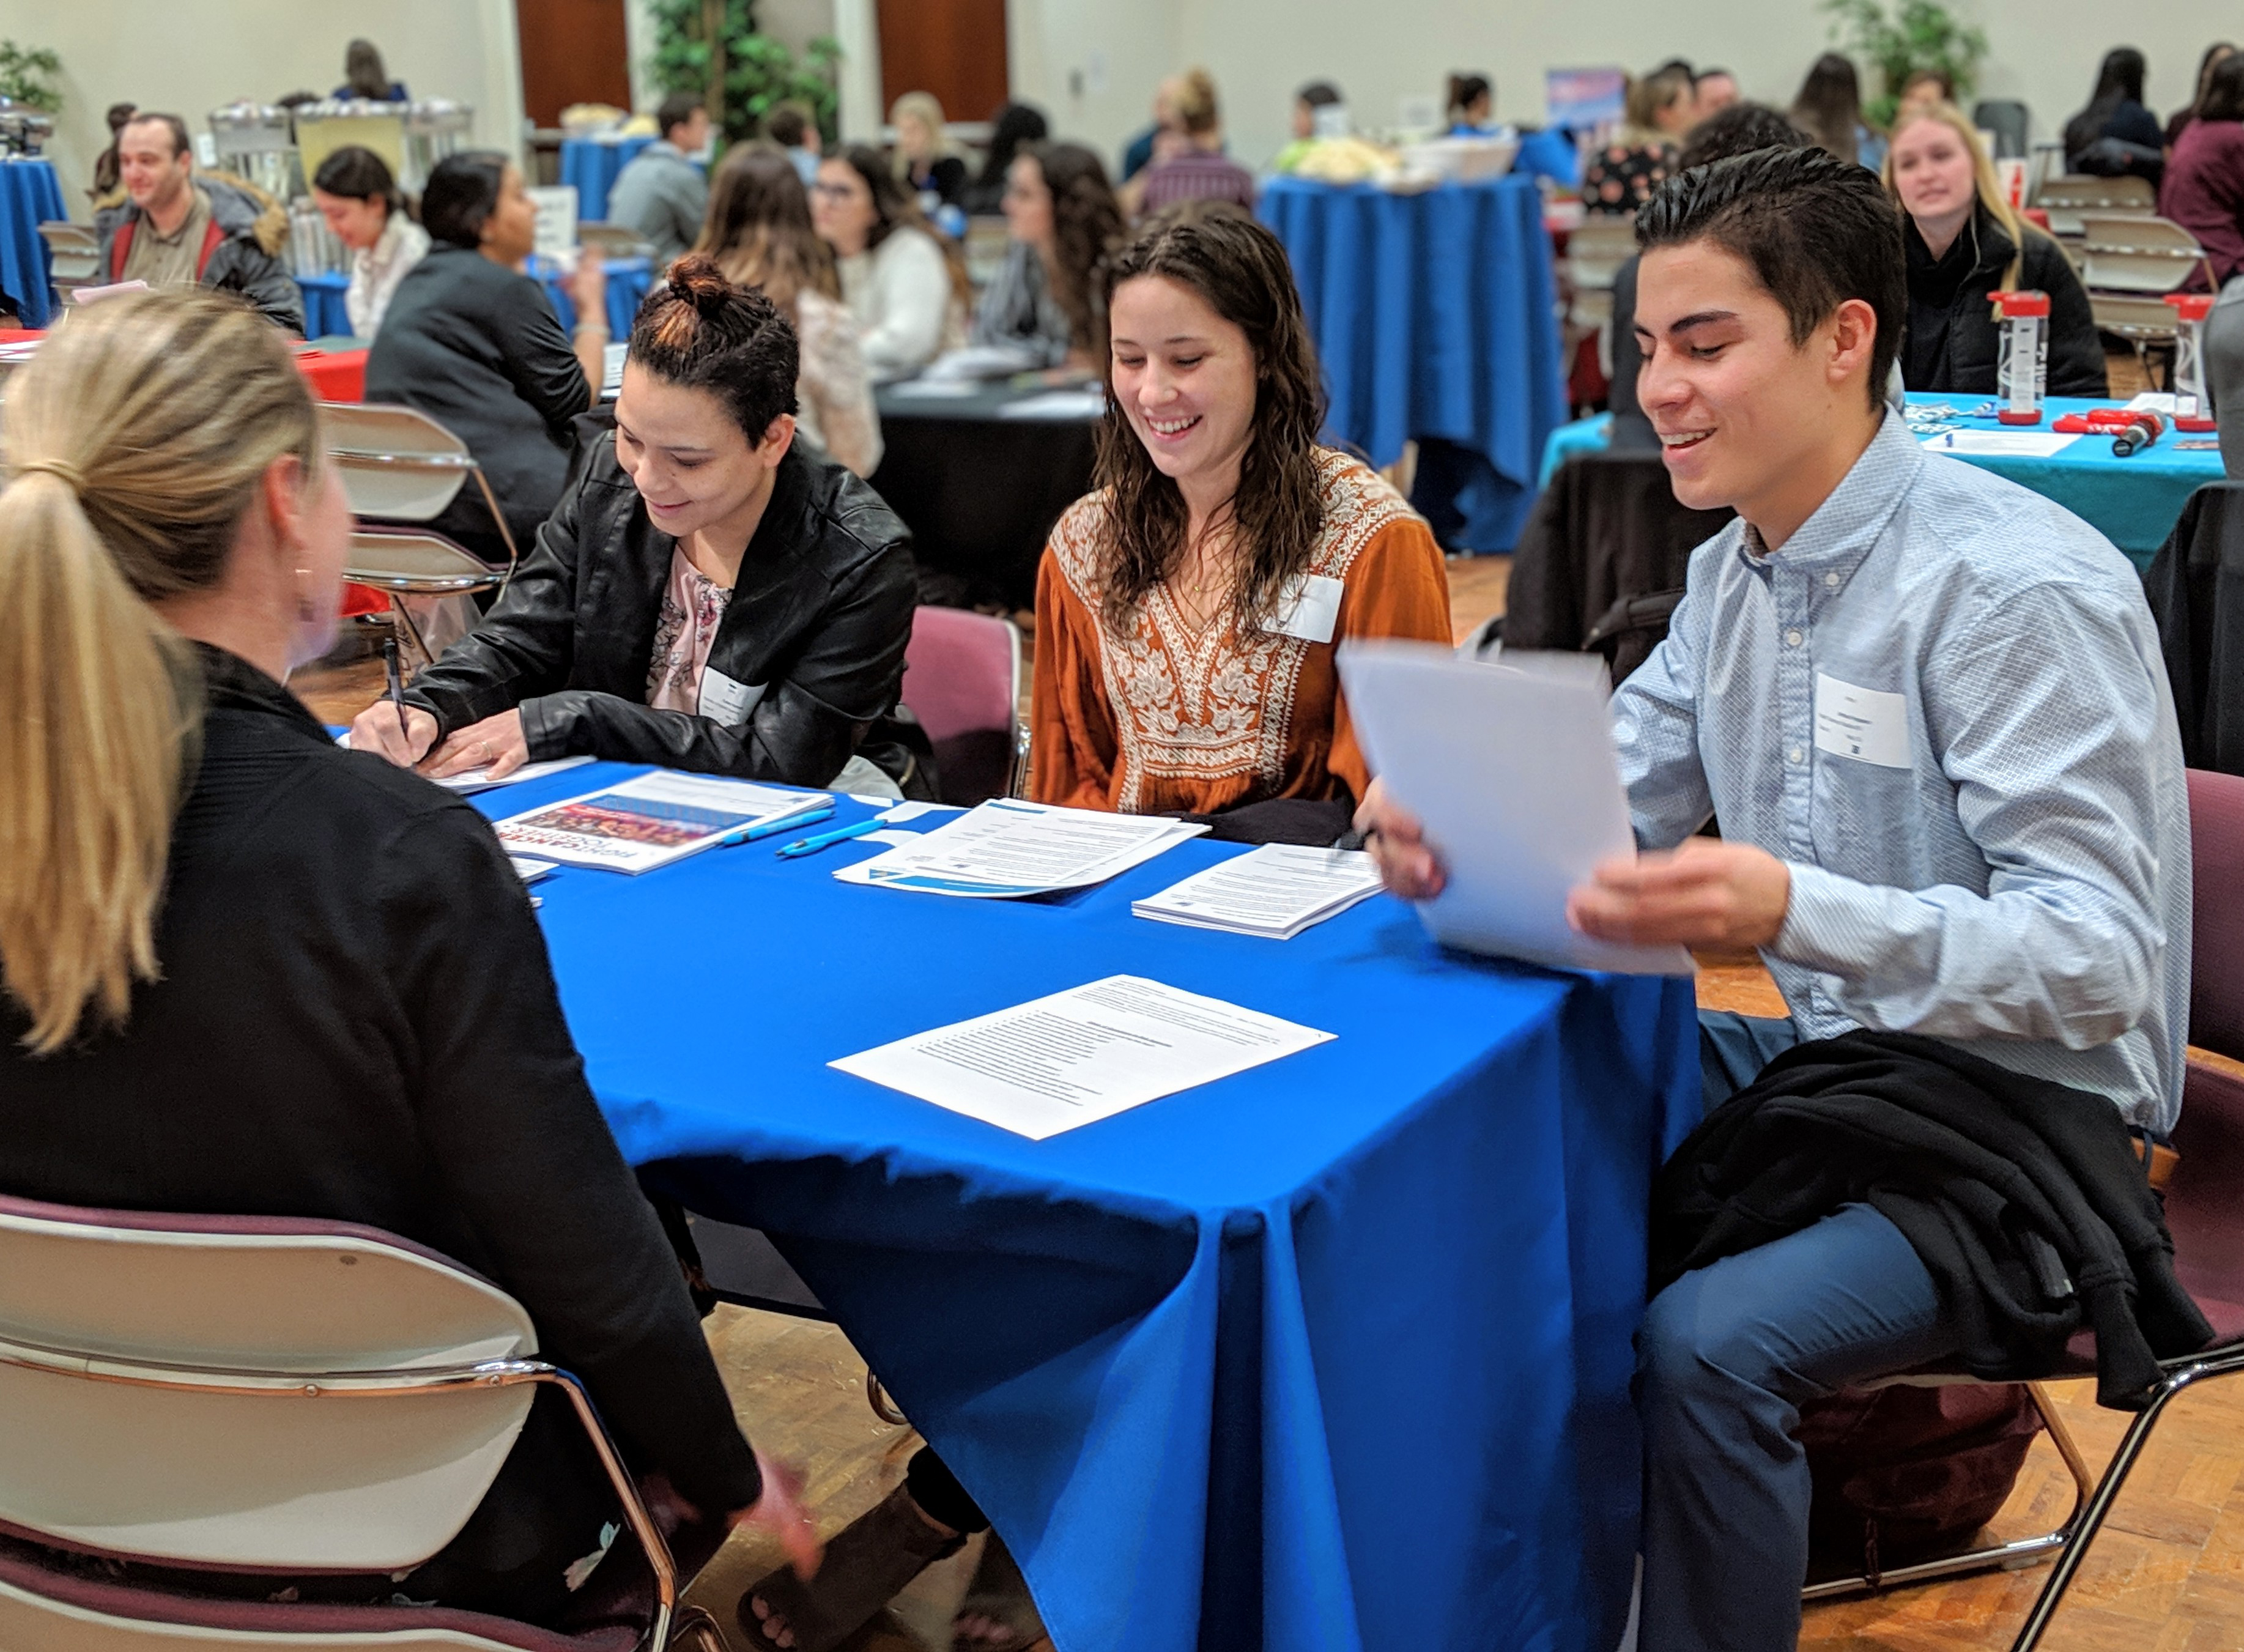 Student handing employer a resume at the meet and greet